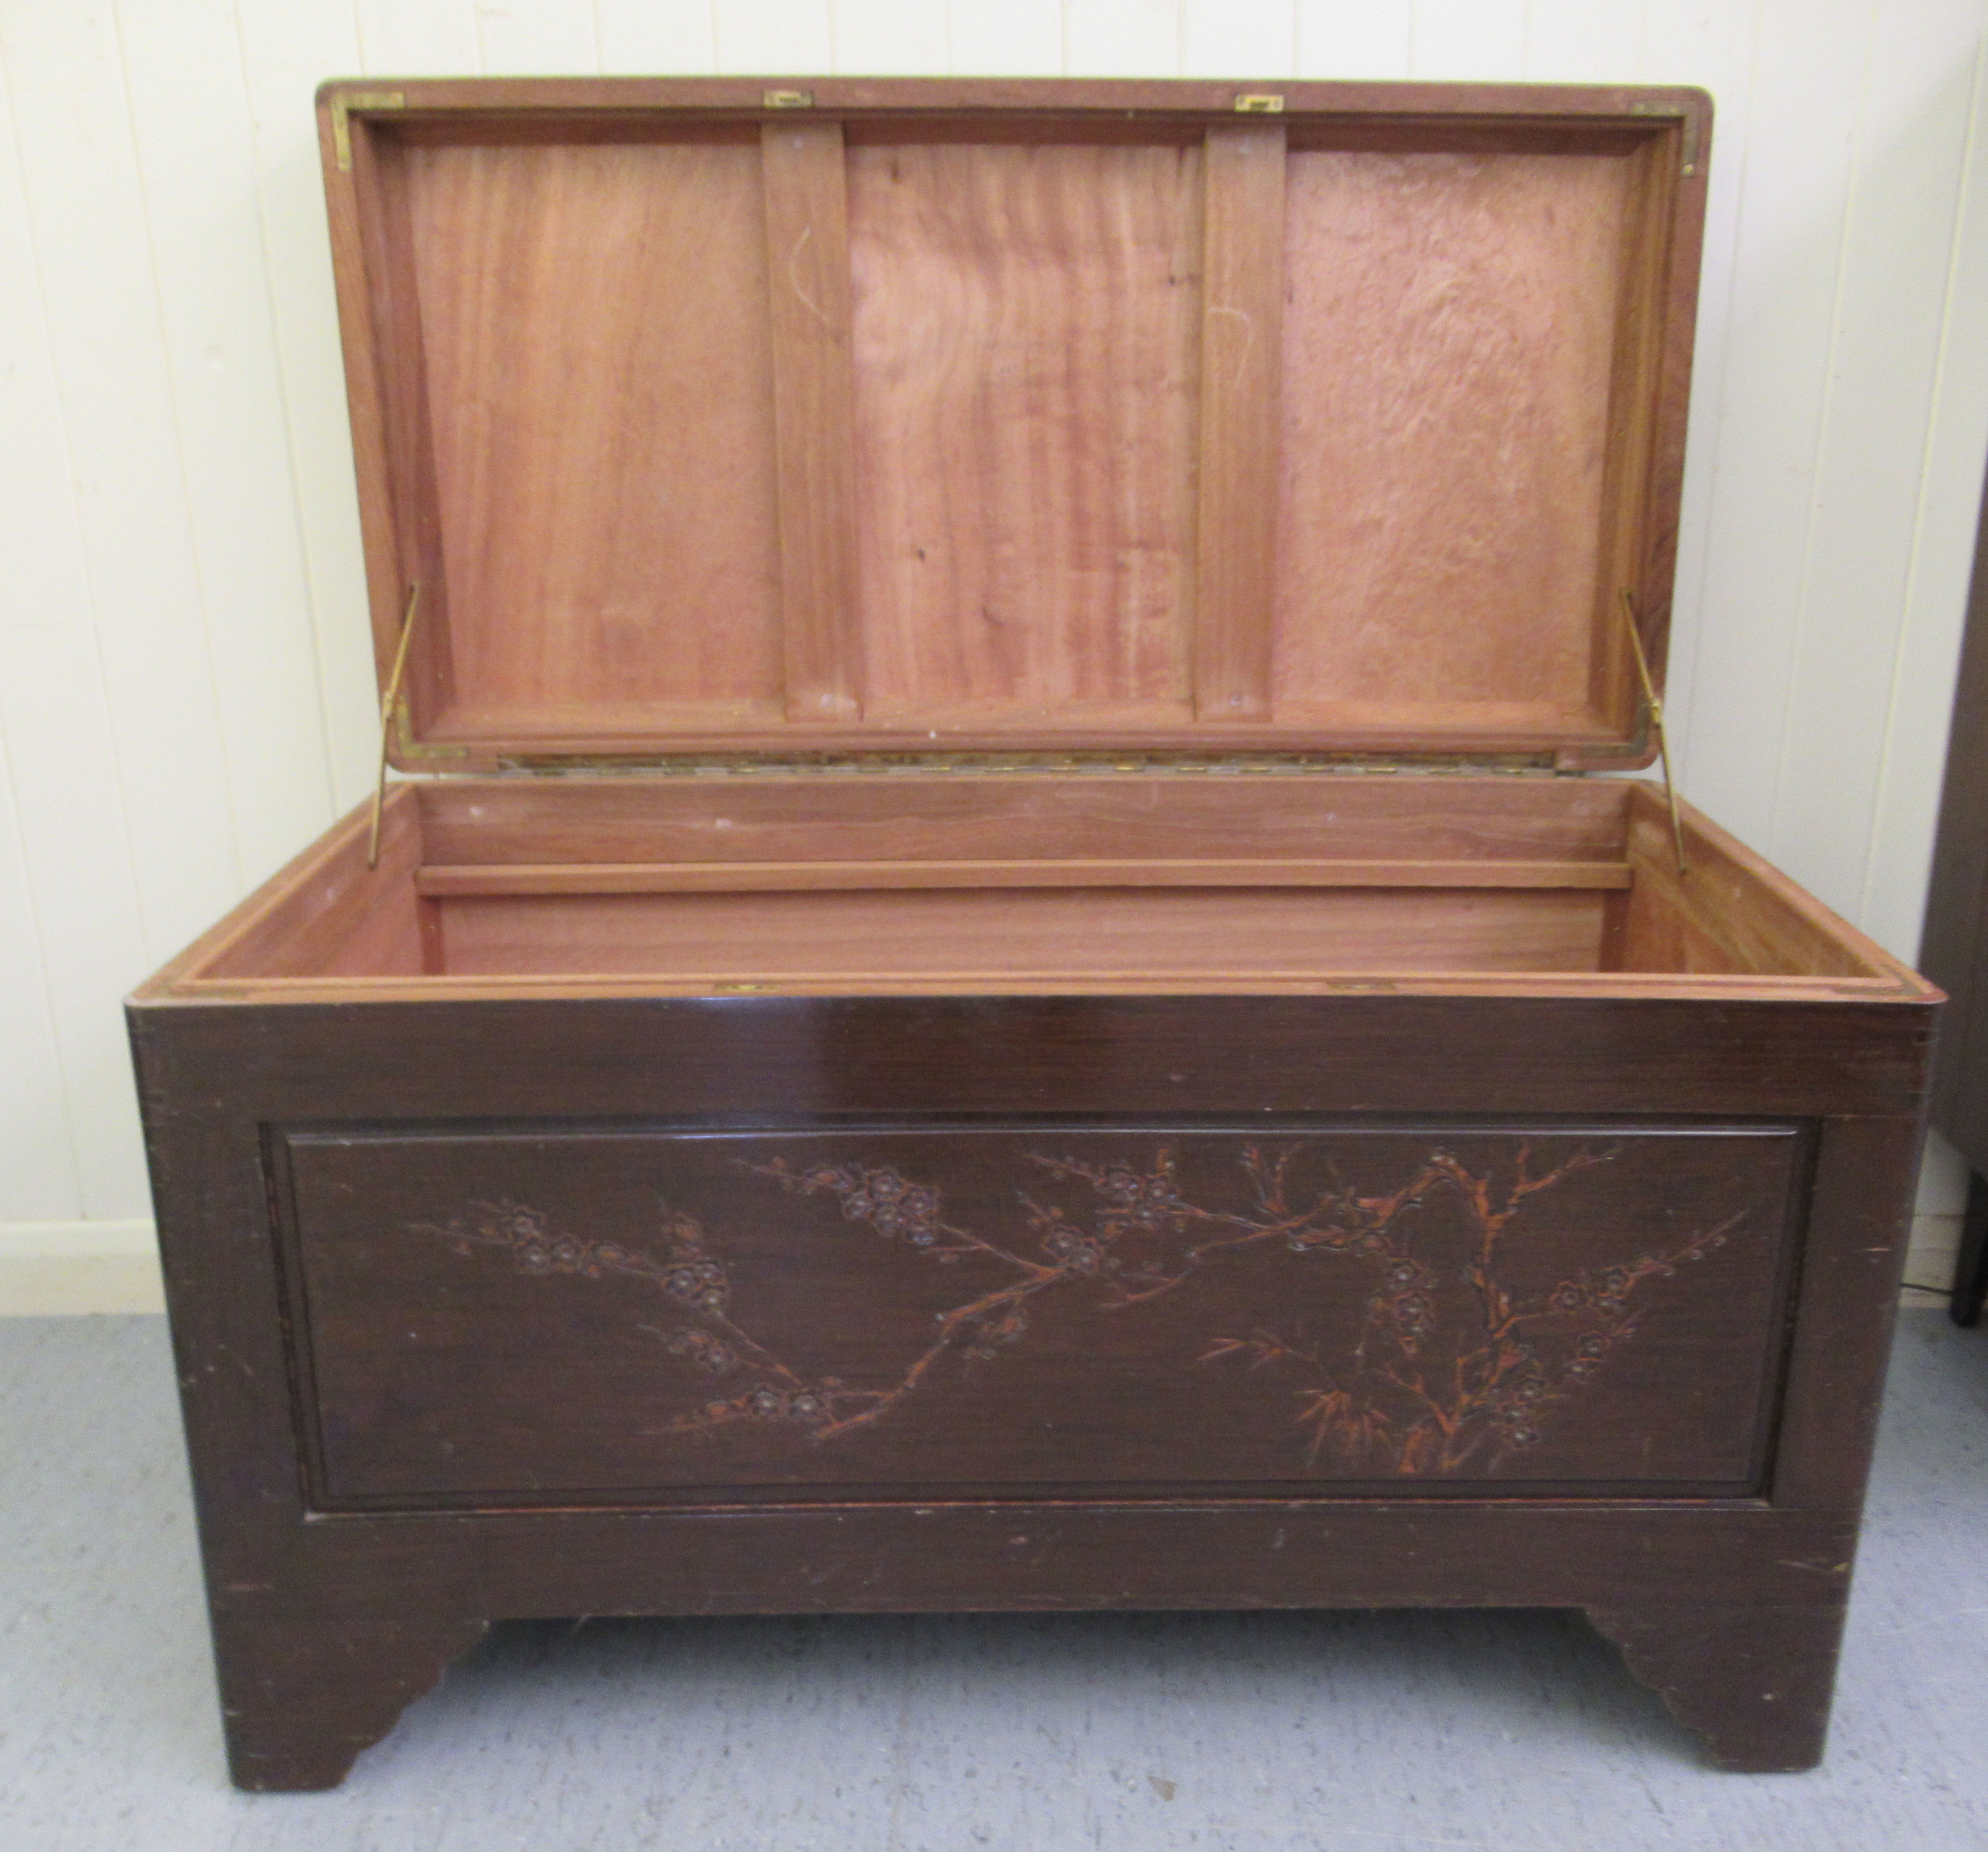 A mid 20thC Chinese carved camphorwood chest, having straight sides and a hinged lid, raised on - Image 2 of 6